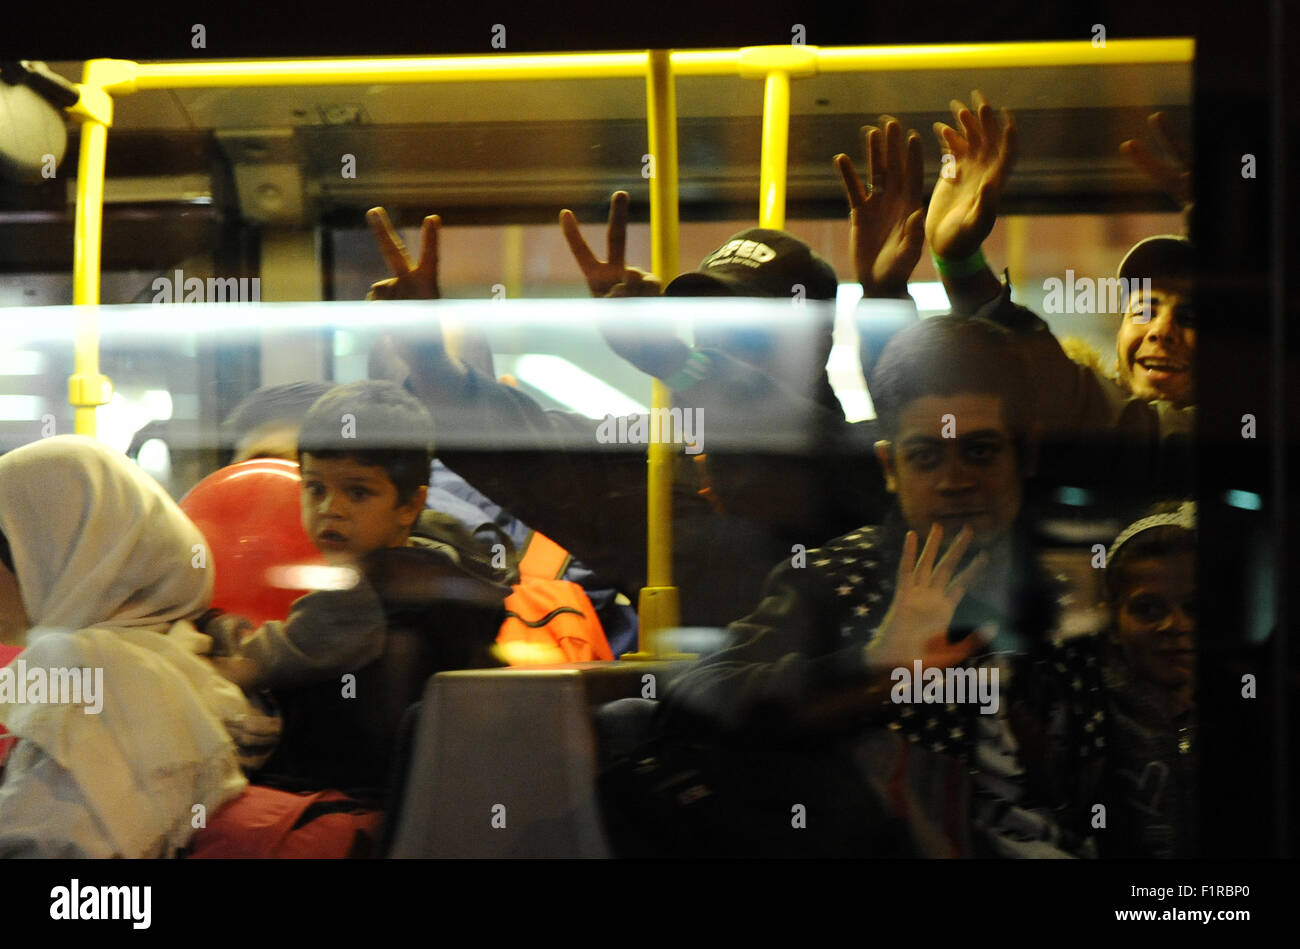 Munich, Germany. 05th Sep, 2015. Refugees wave from a bus which takes them to a reception center after arriving - Stock Image